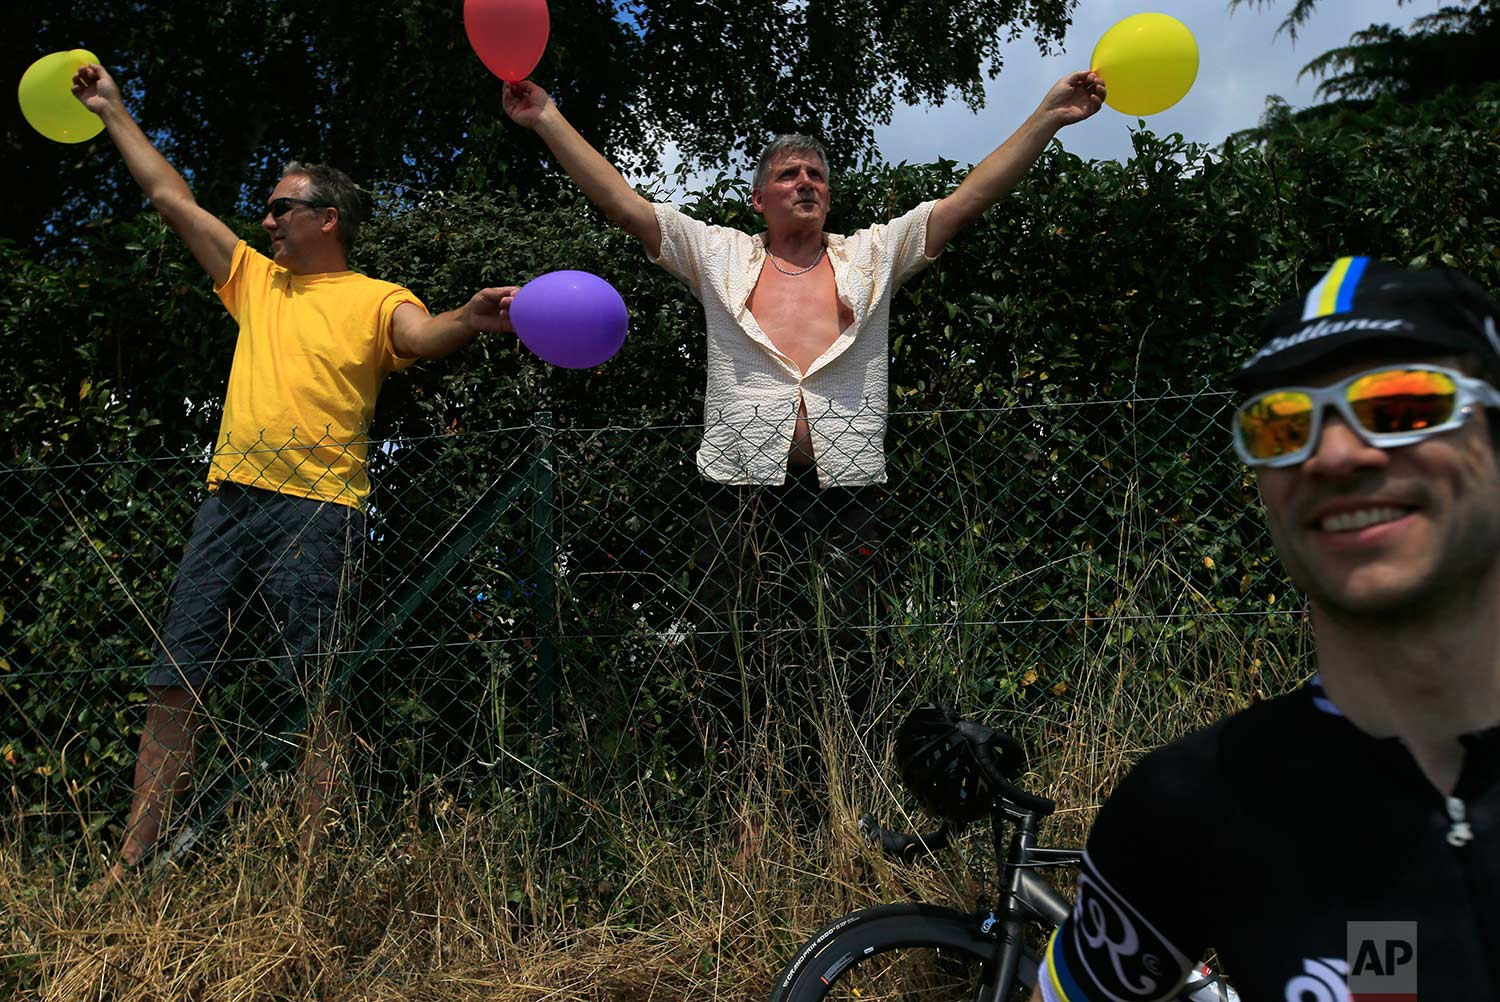 Spectators wait road-side for the pack to pass during the eight stage of the Tour de France cycling race over 181 kilometers (112.5 miles) with start in Dreux and finish in Amiens, France, Saturday, July 14, 2018.  (AP Photo/Peter Dejong)